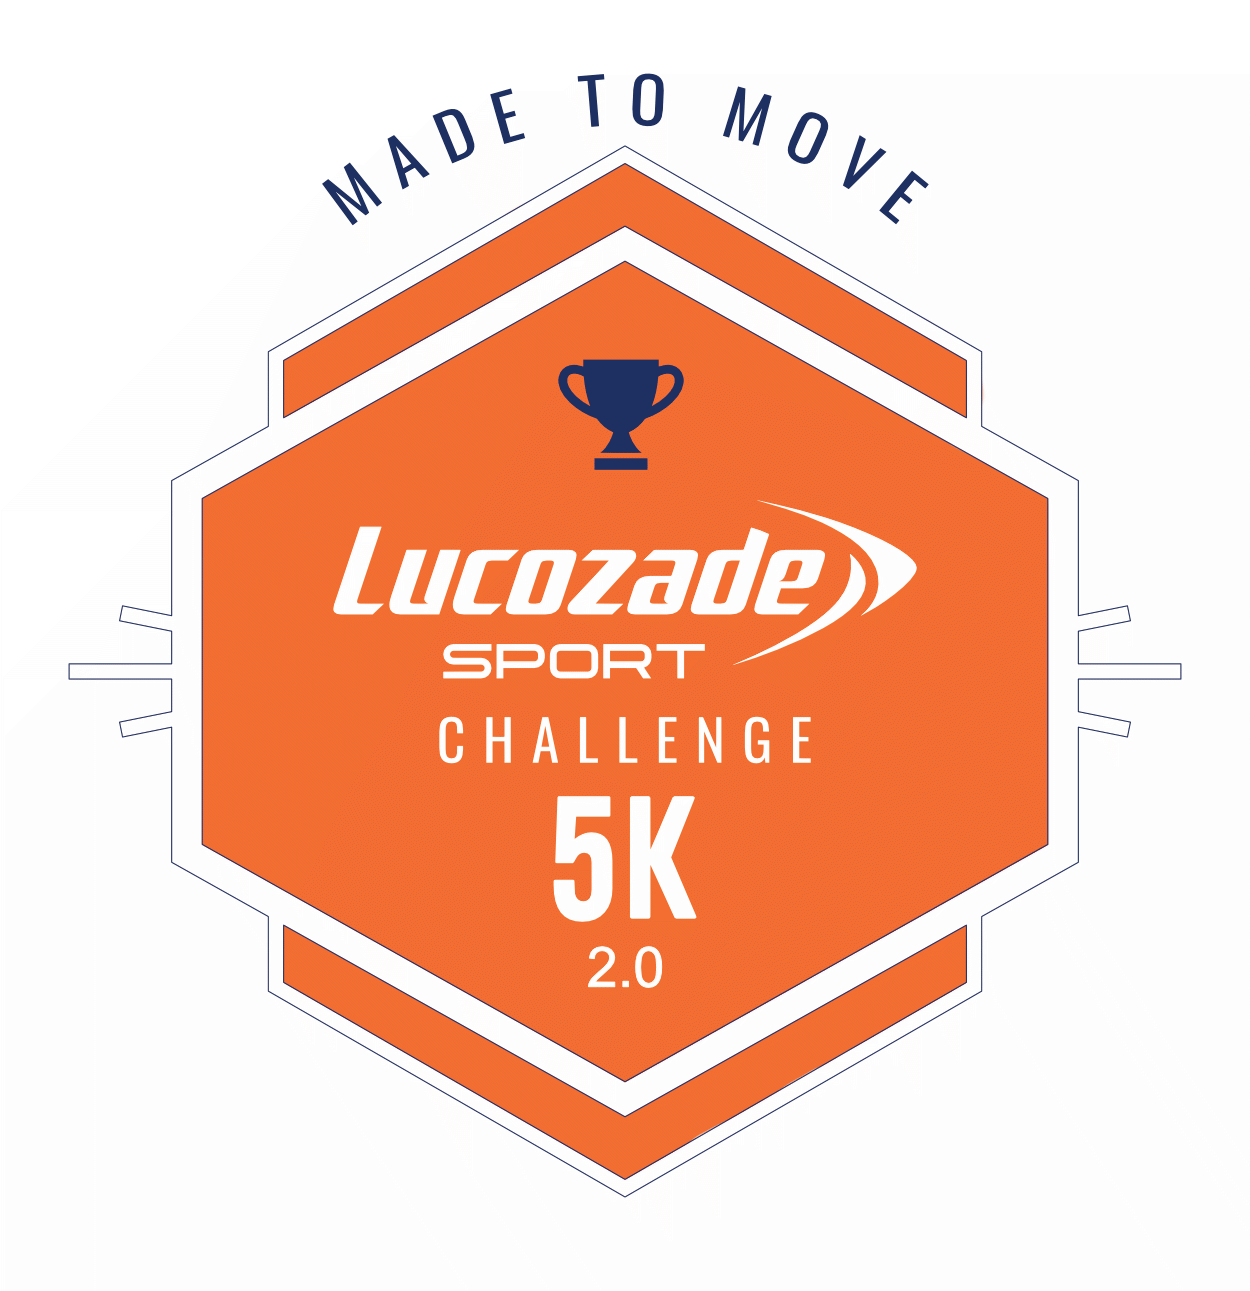 The Lucozade Sport #MadeToMove 2.0 Challenge logo